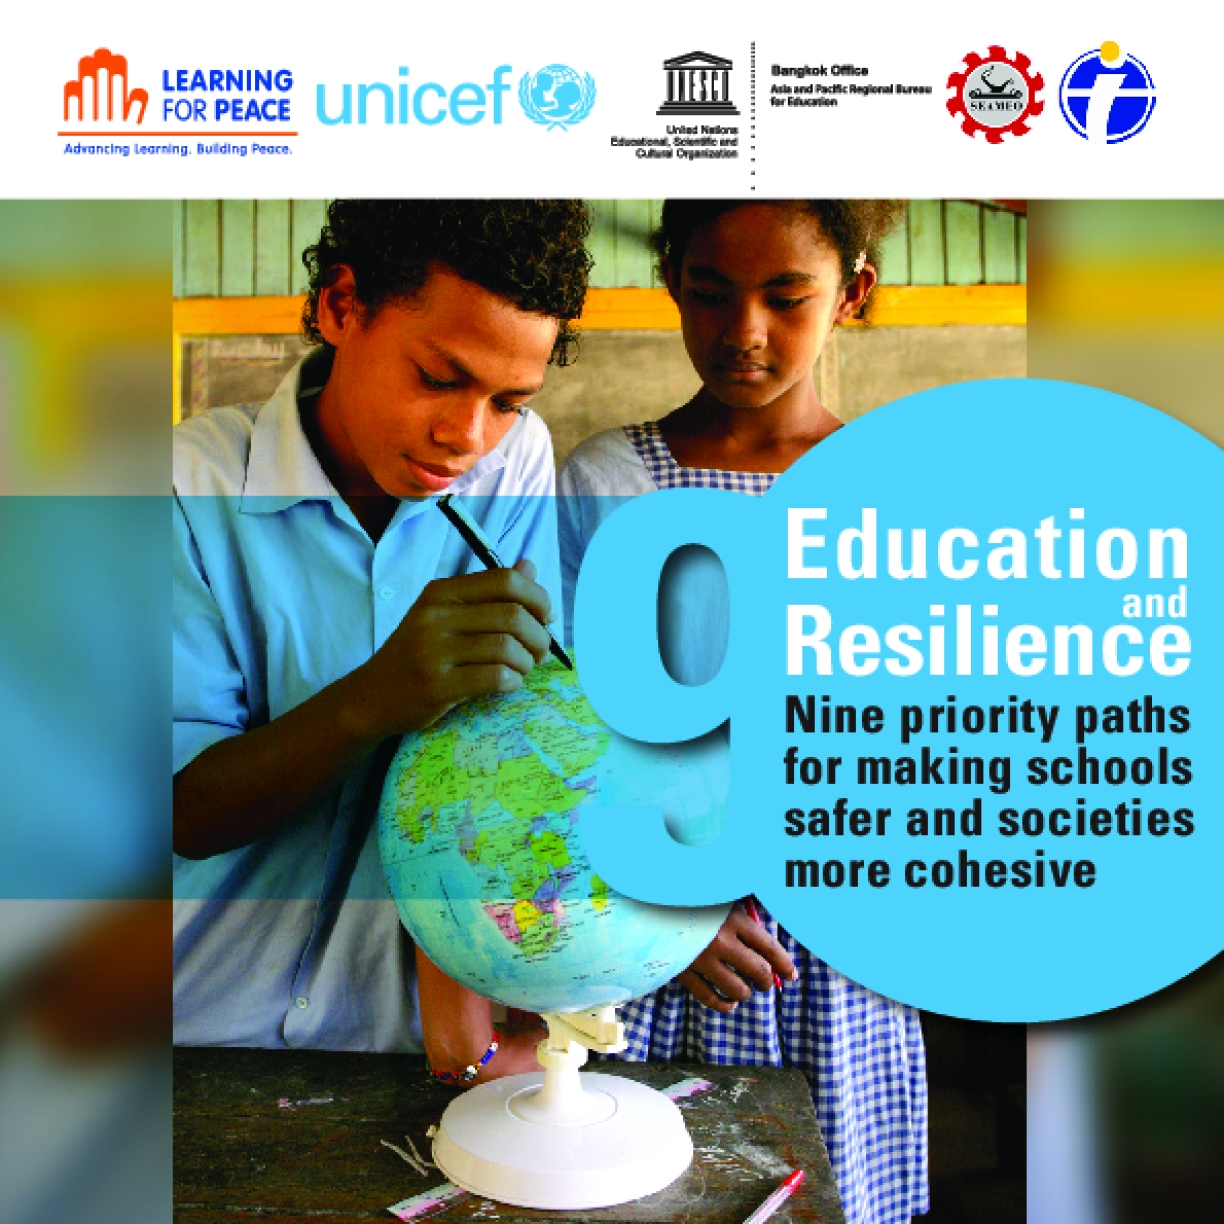 Education and Resilience: Nine Priority Paths for Making Schools Safer and Societies More Cohesive